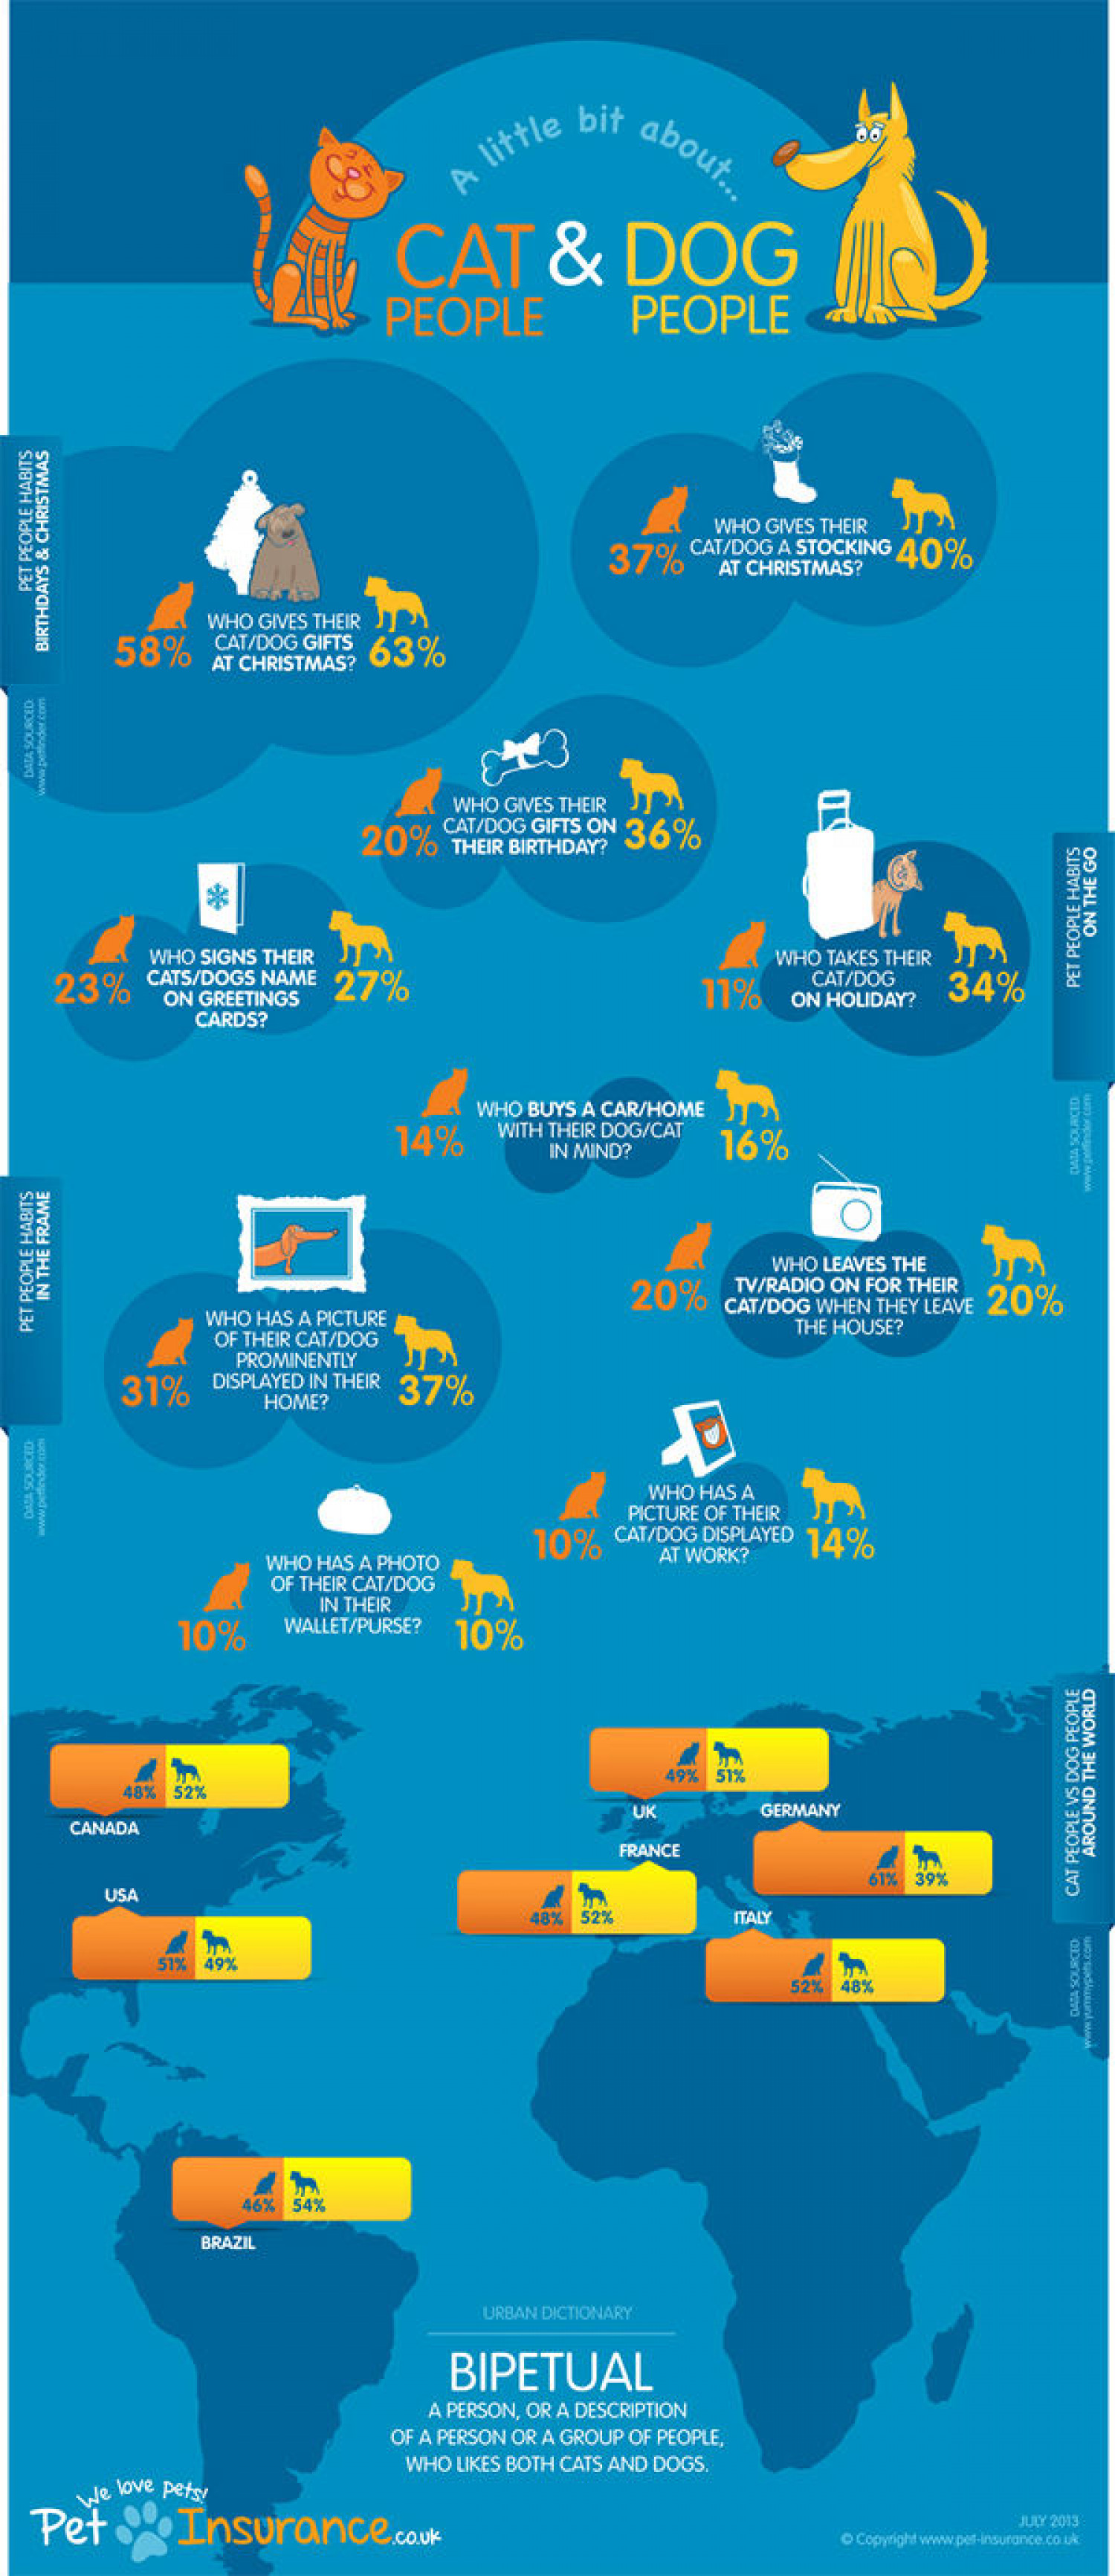 A little bit about cat people & dog people Infographic